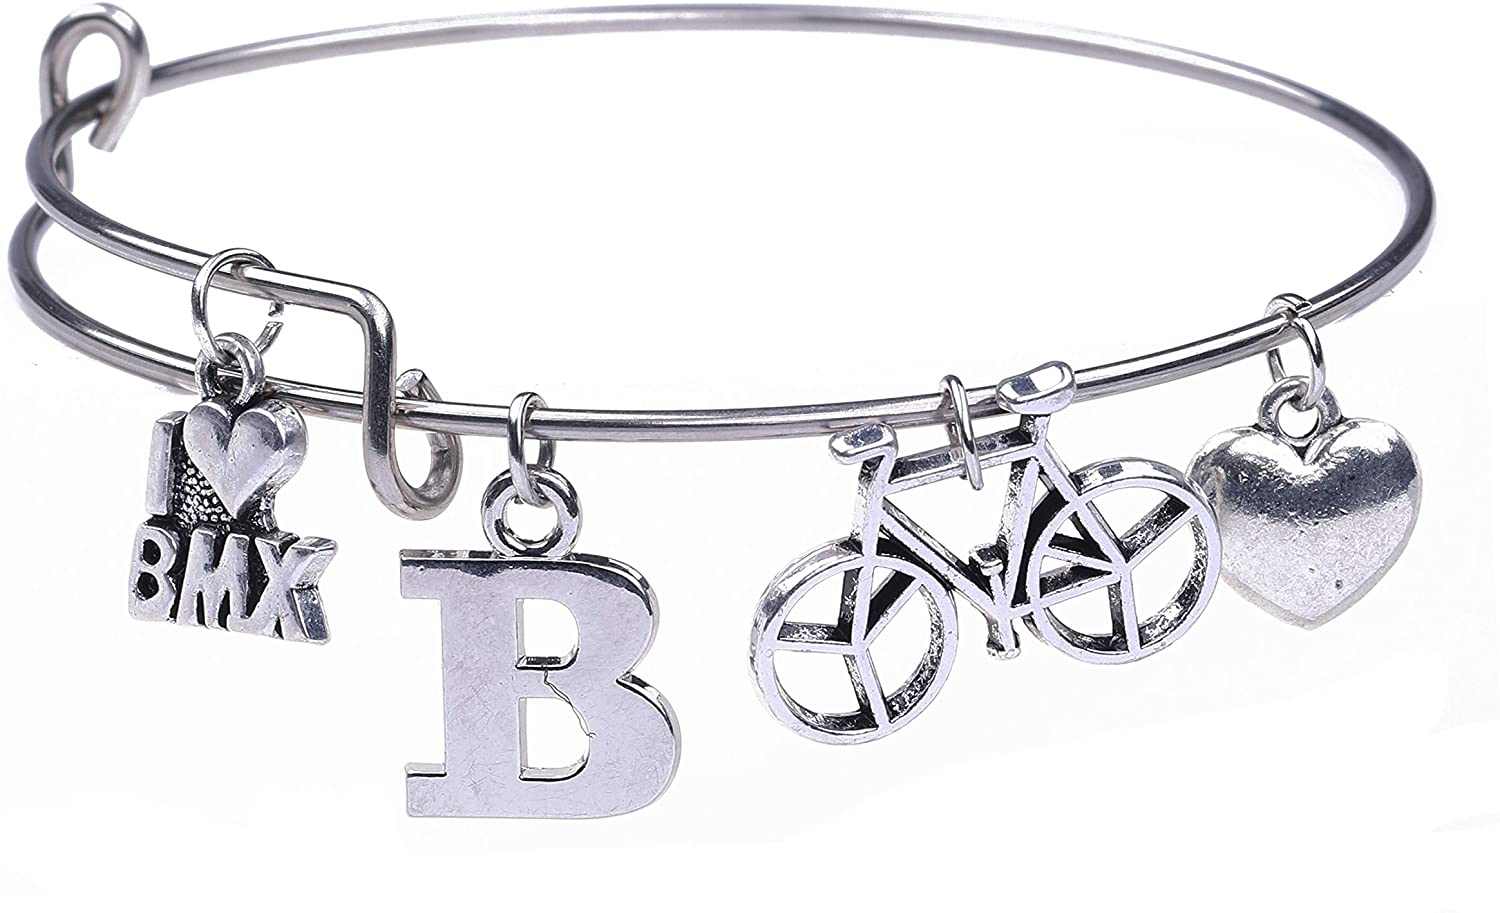 cooltime BMXfreestyle Bicycle Motorcross Stainless Steel Bangle Bracelet for Sport Boys